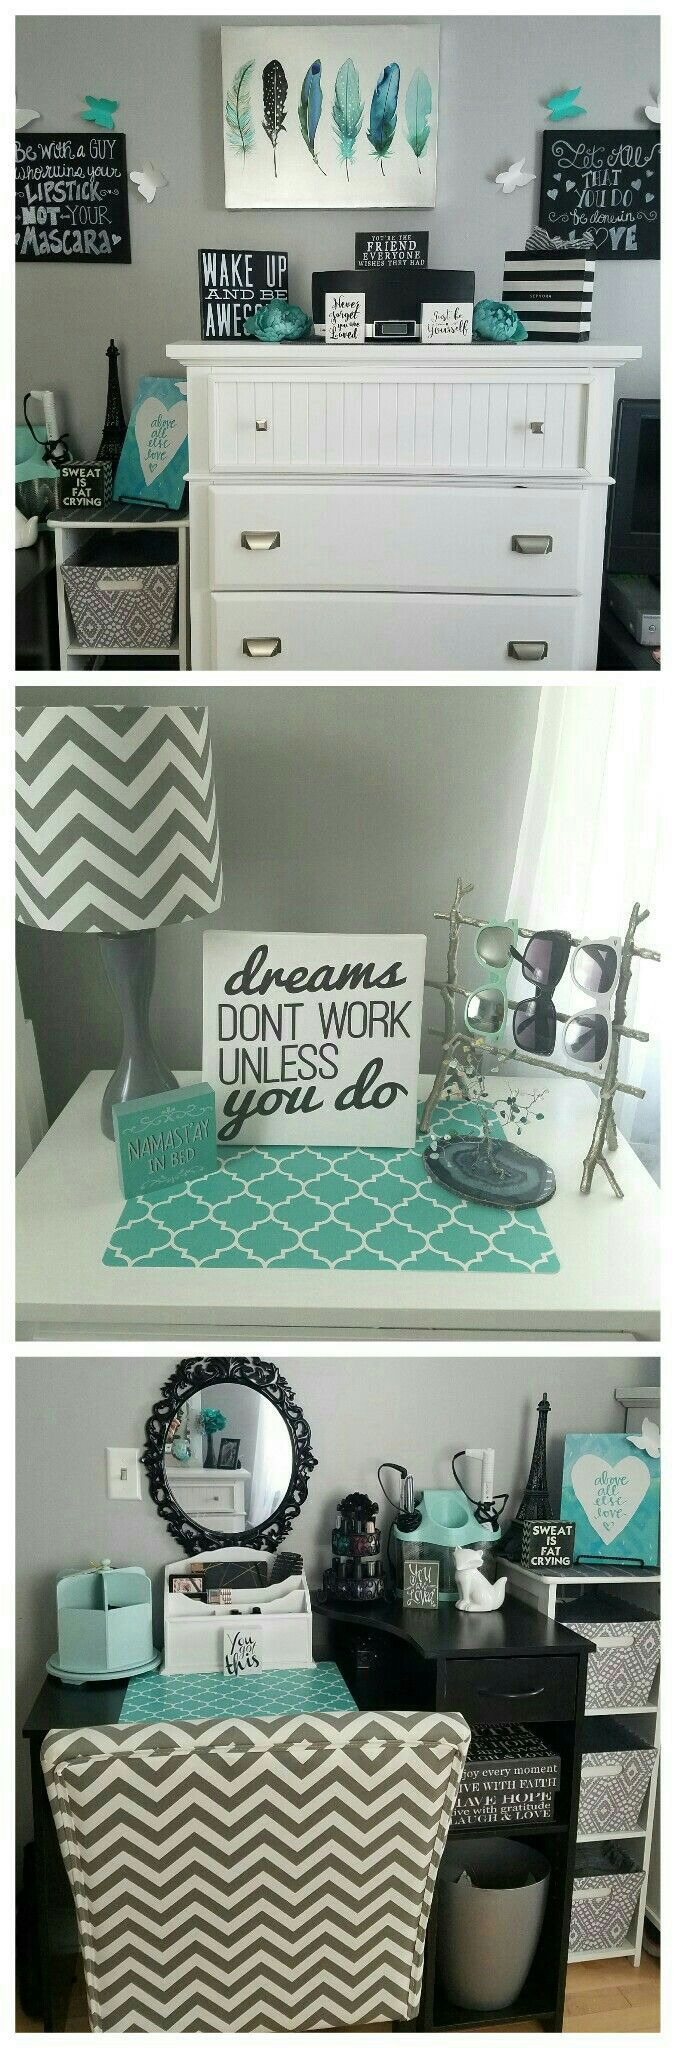 Black and white and teal bedroom - Find This Pin And More On Bedroom Ideas